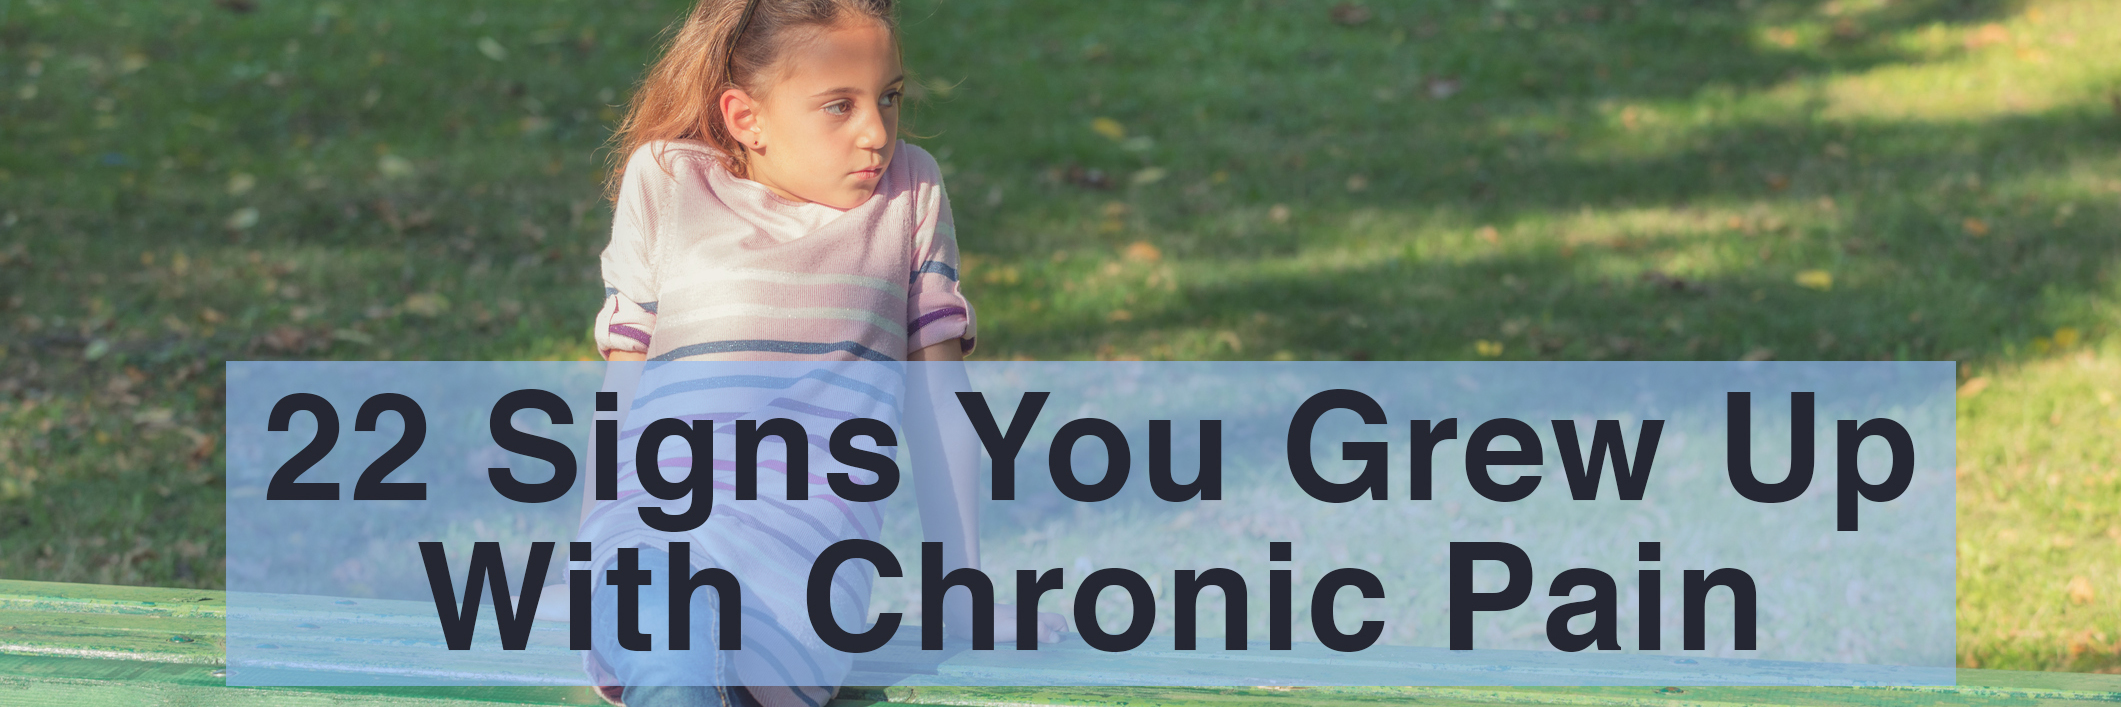 22 signs you grew up with chronic pain